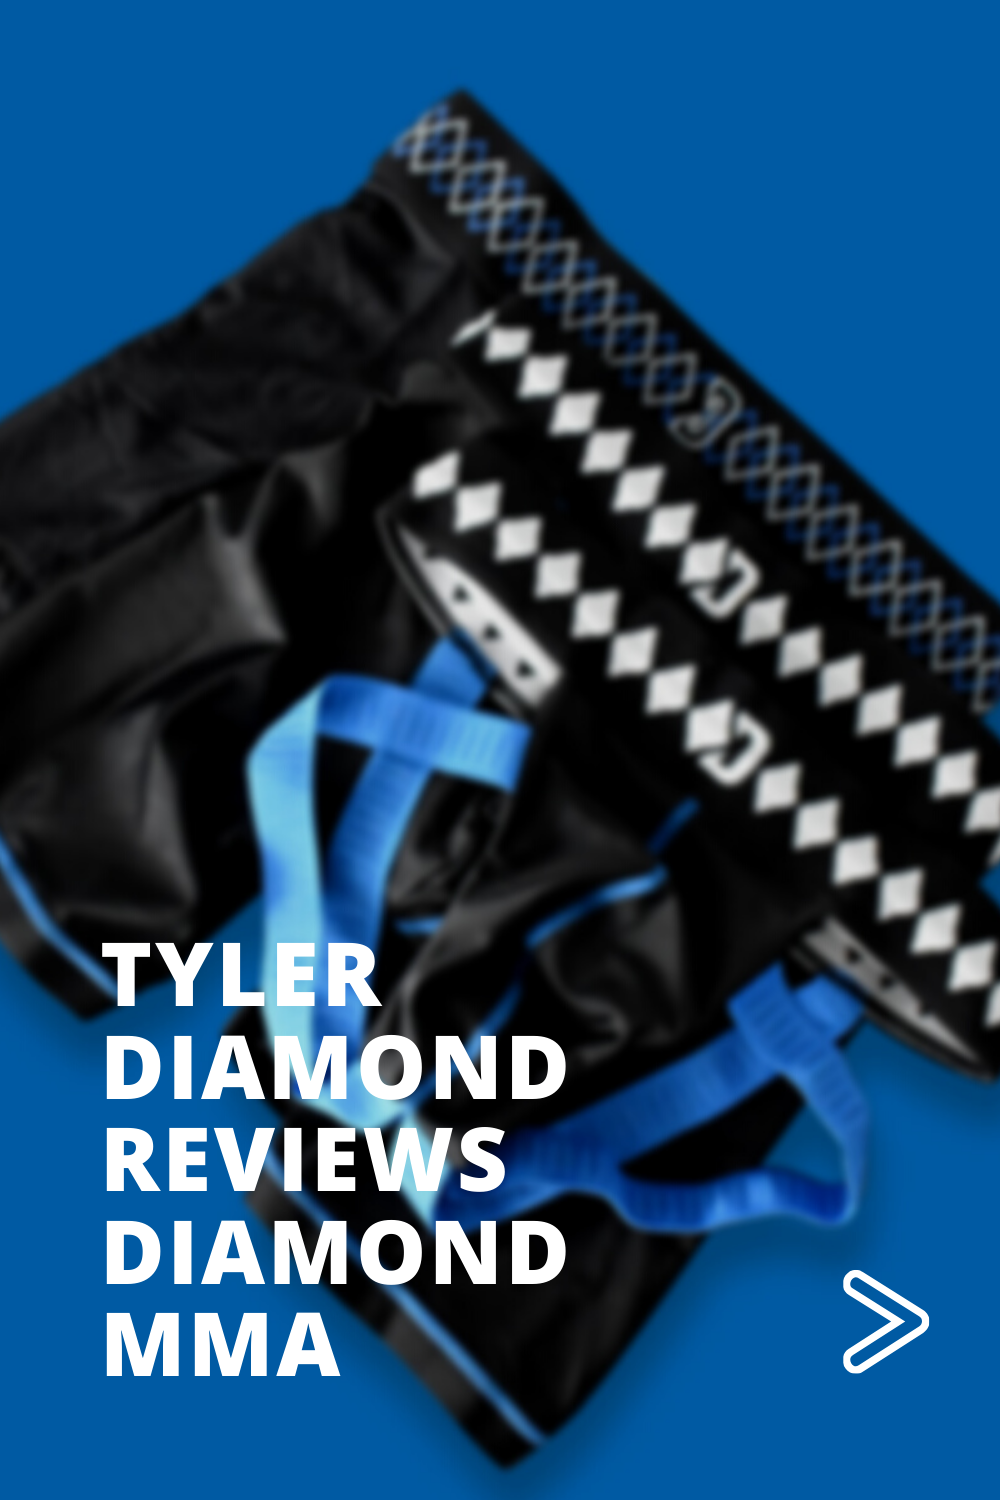 Tyler Diamond Reviews Diamond MMA